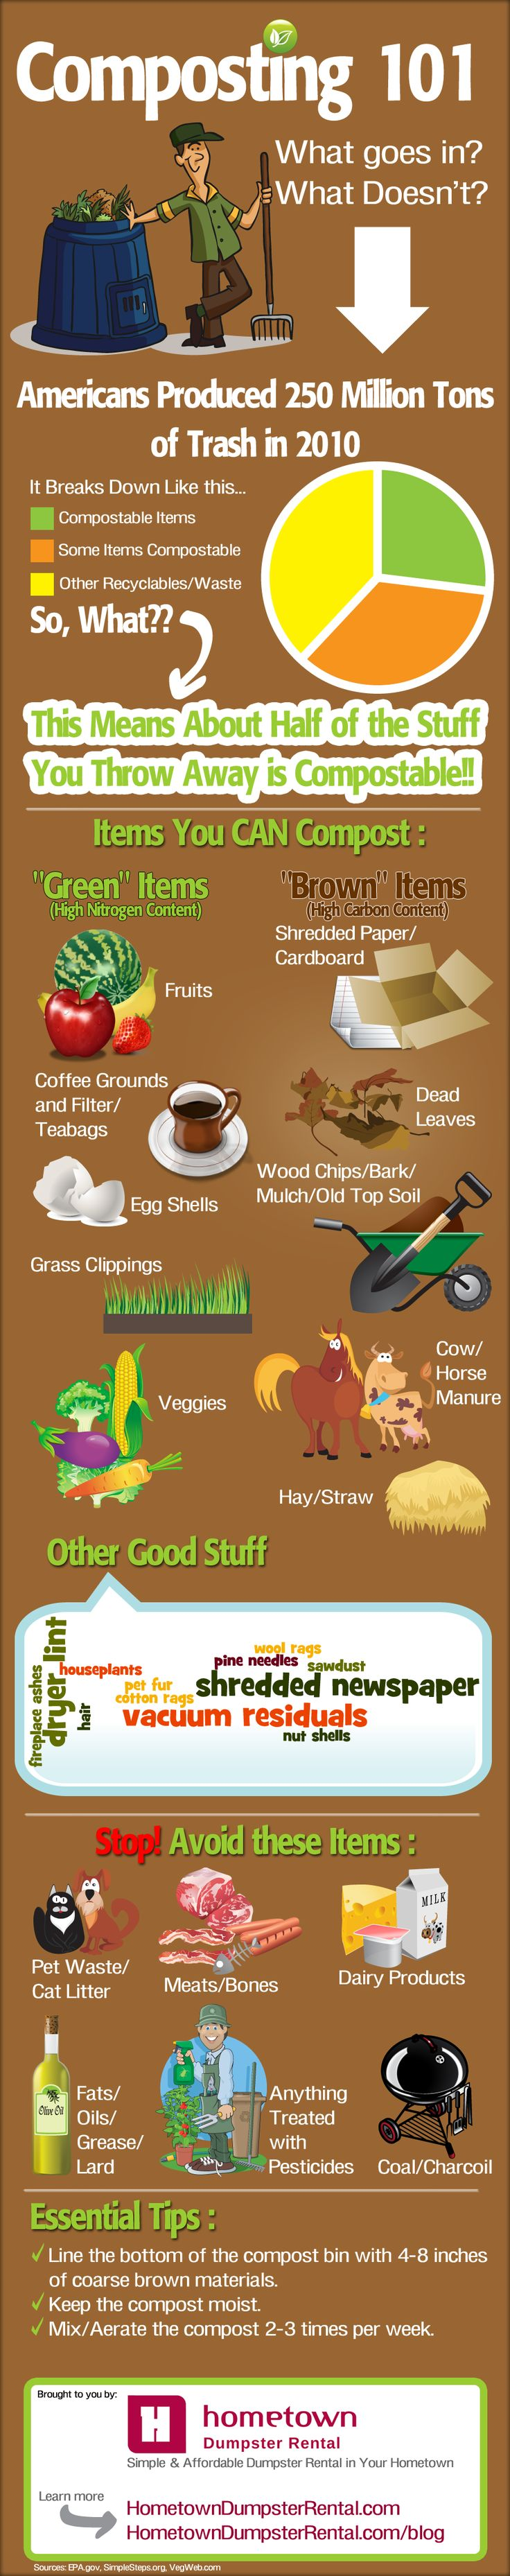 This Composting 101 #infographic will help out with our #compost actions! http://ow.ly/cZE9V